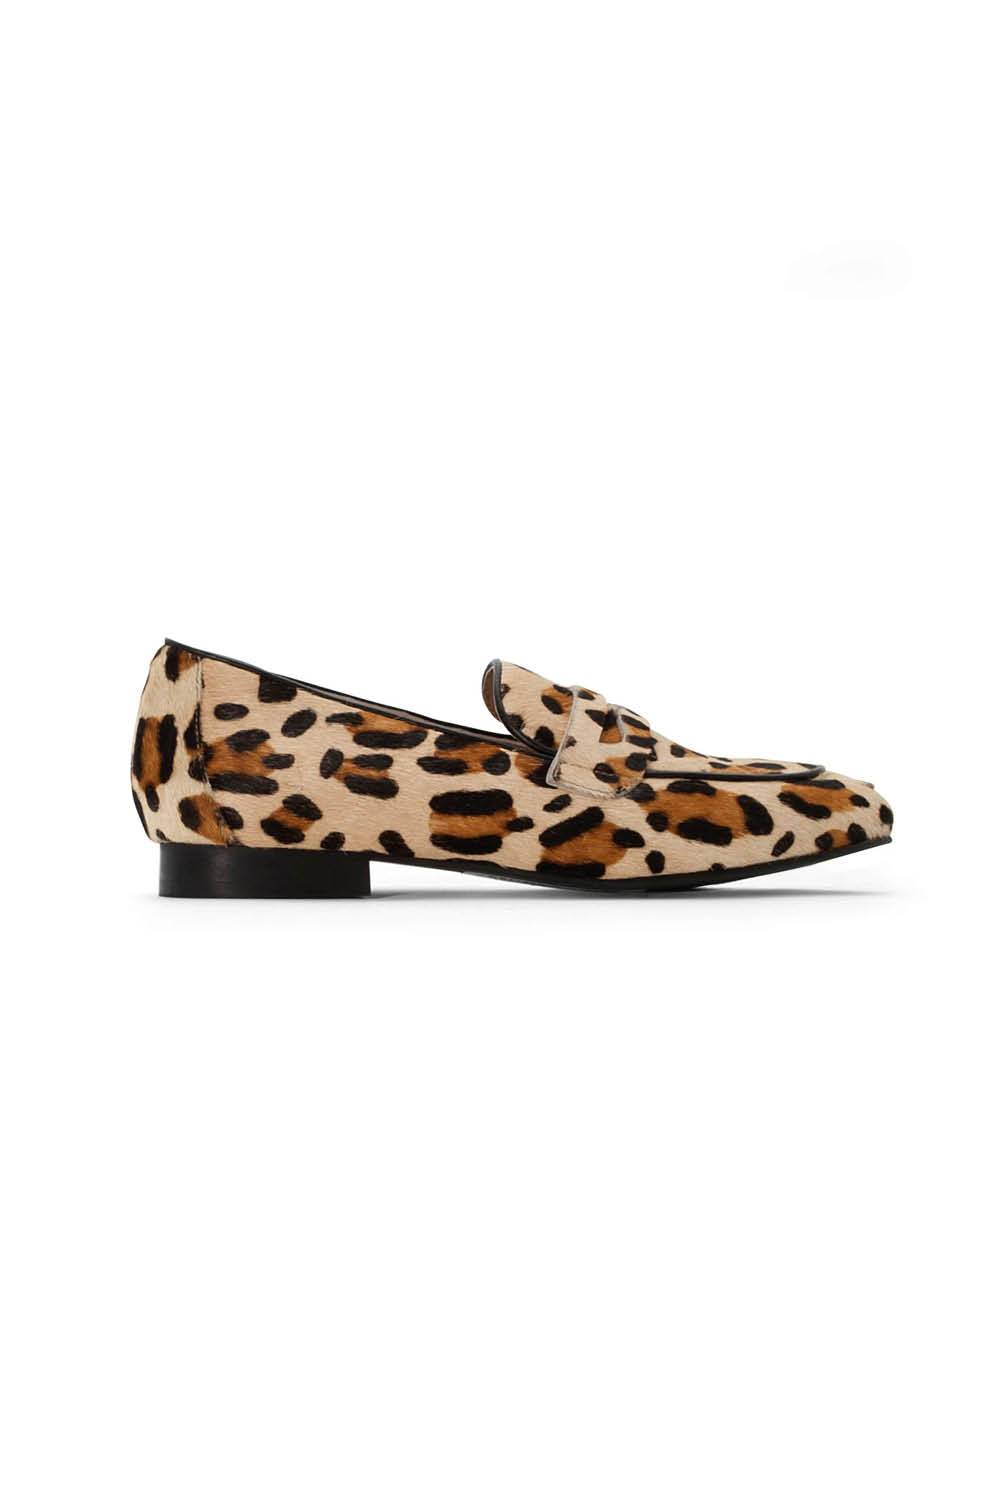 mocasines La Redoute animal print Invierno 2019